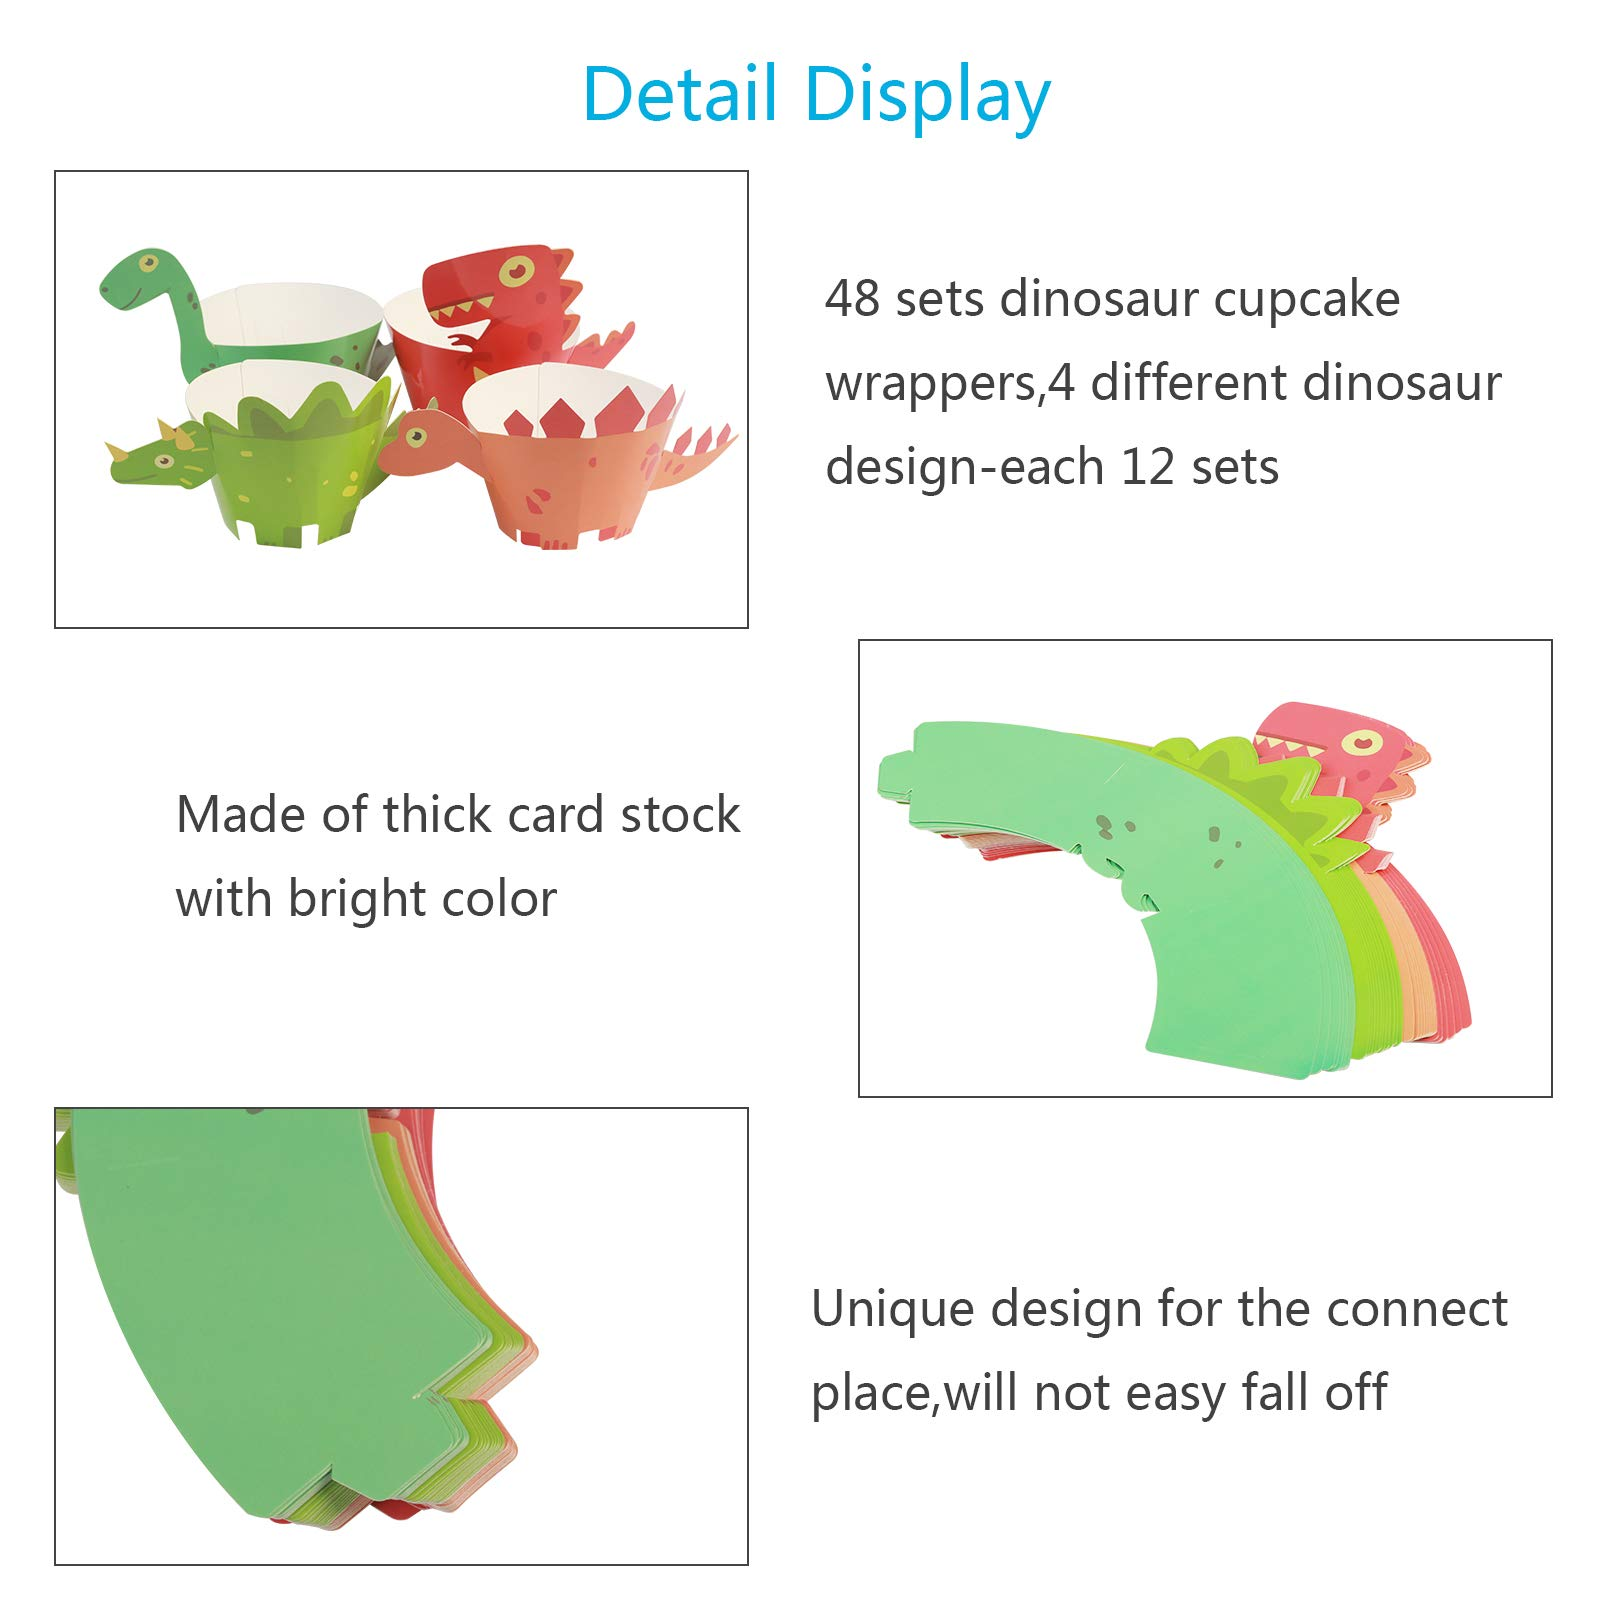 Dinosaur Cupcake Wrappers,LANMOK 48sets Cup Cake Topper Wrappers Jurassic Stegosaurus T-Rex Triceratops Plesiosaurus Cake Decor for Dino Themed Party Supply Baby Shower